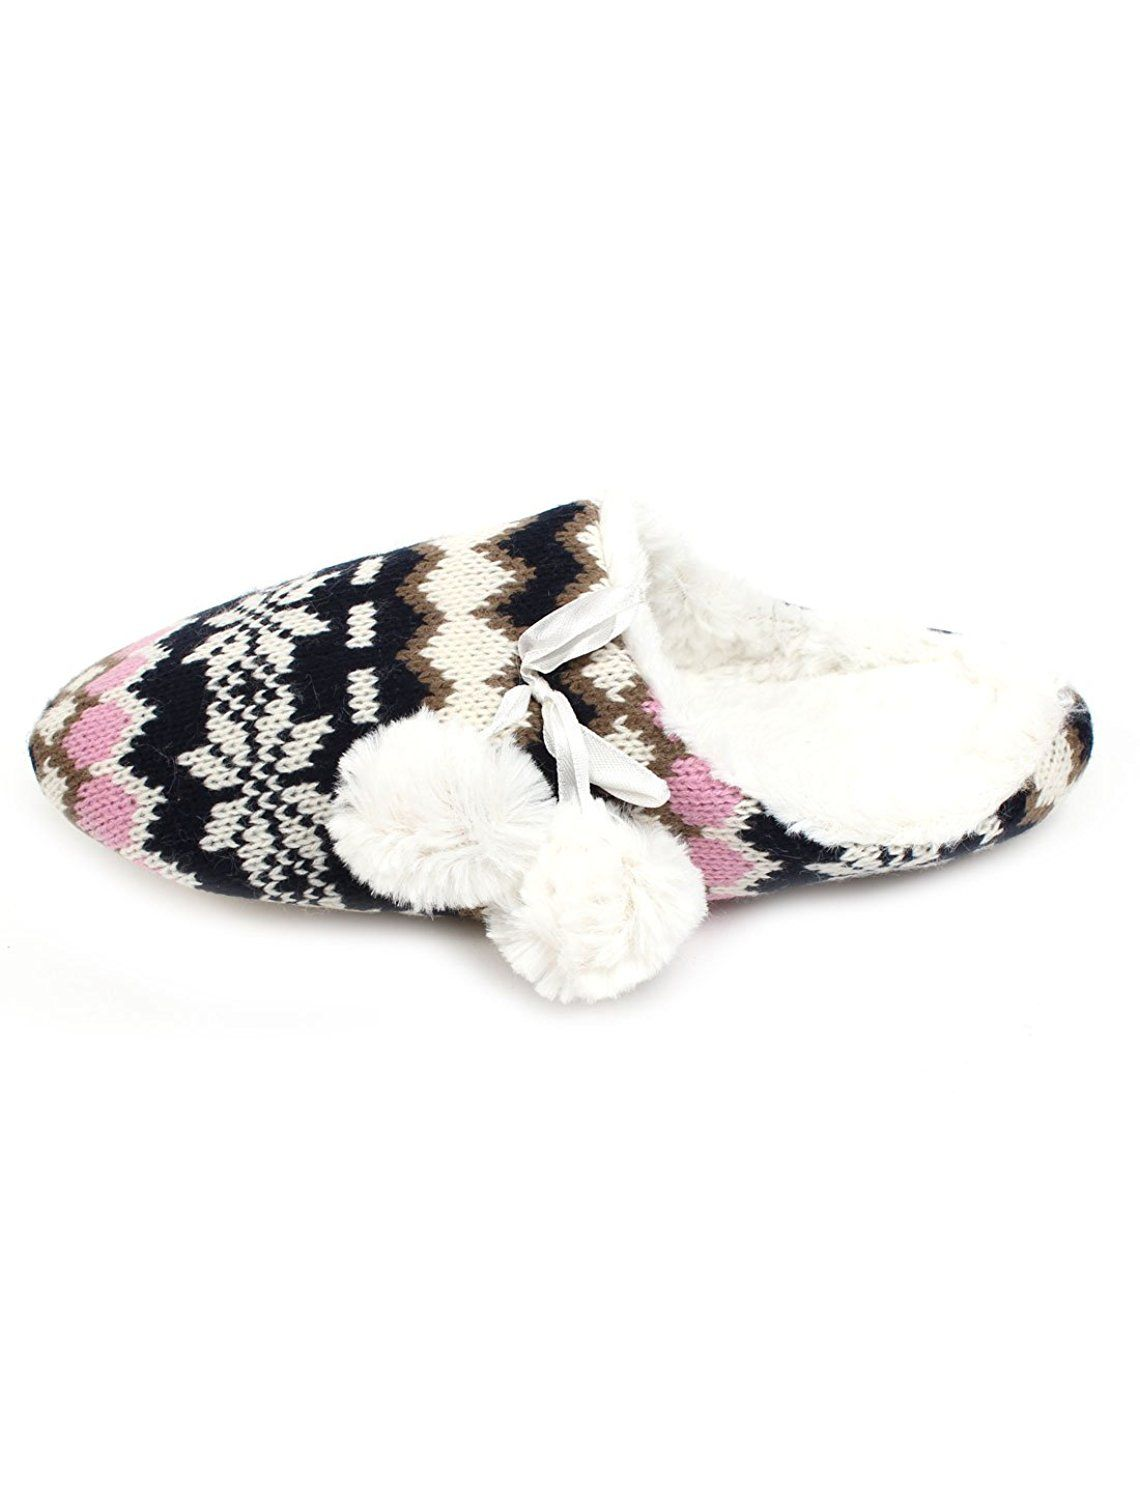 uxcell Women Nordic Pattern Warm Slippers Dark Blue White US 7 *** Click image for more details.